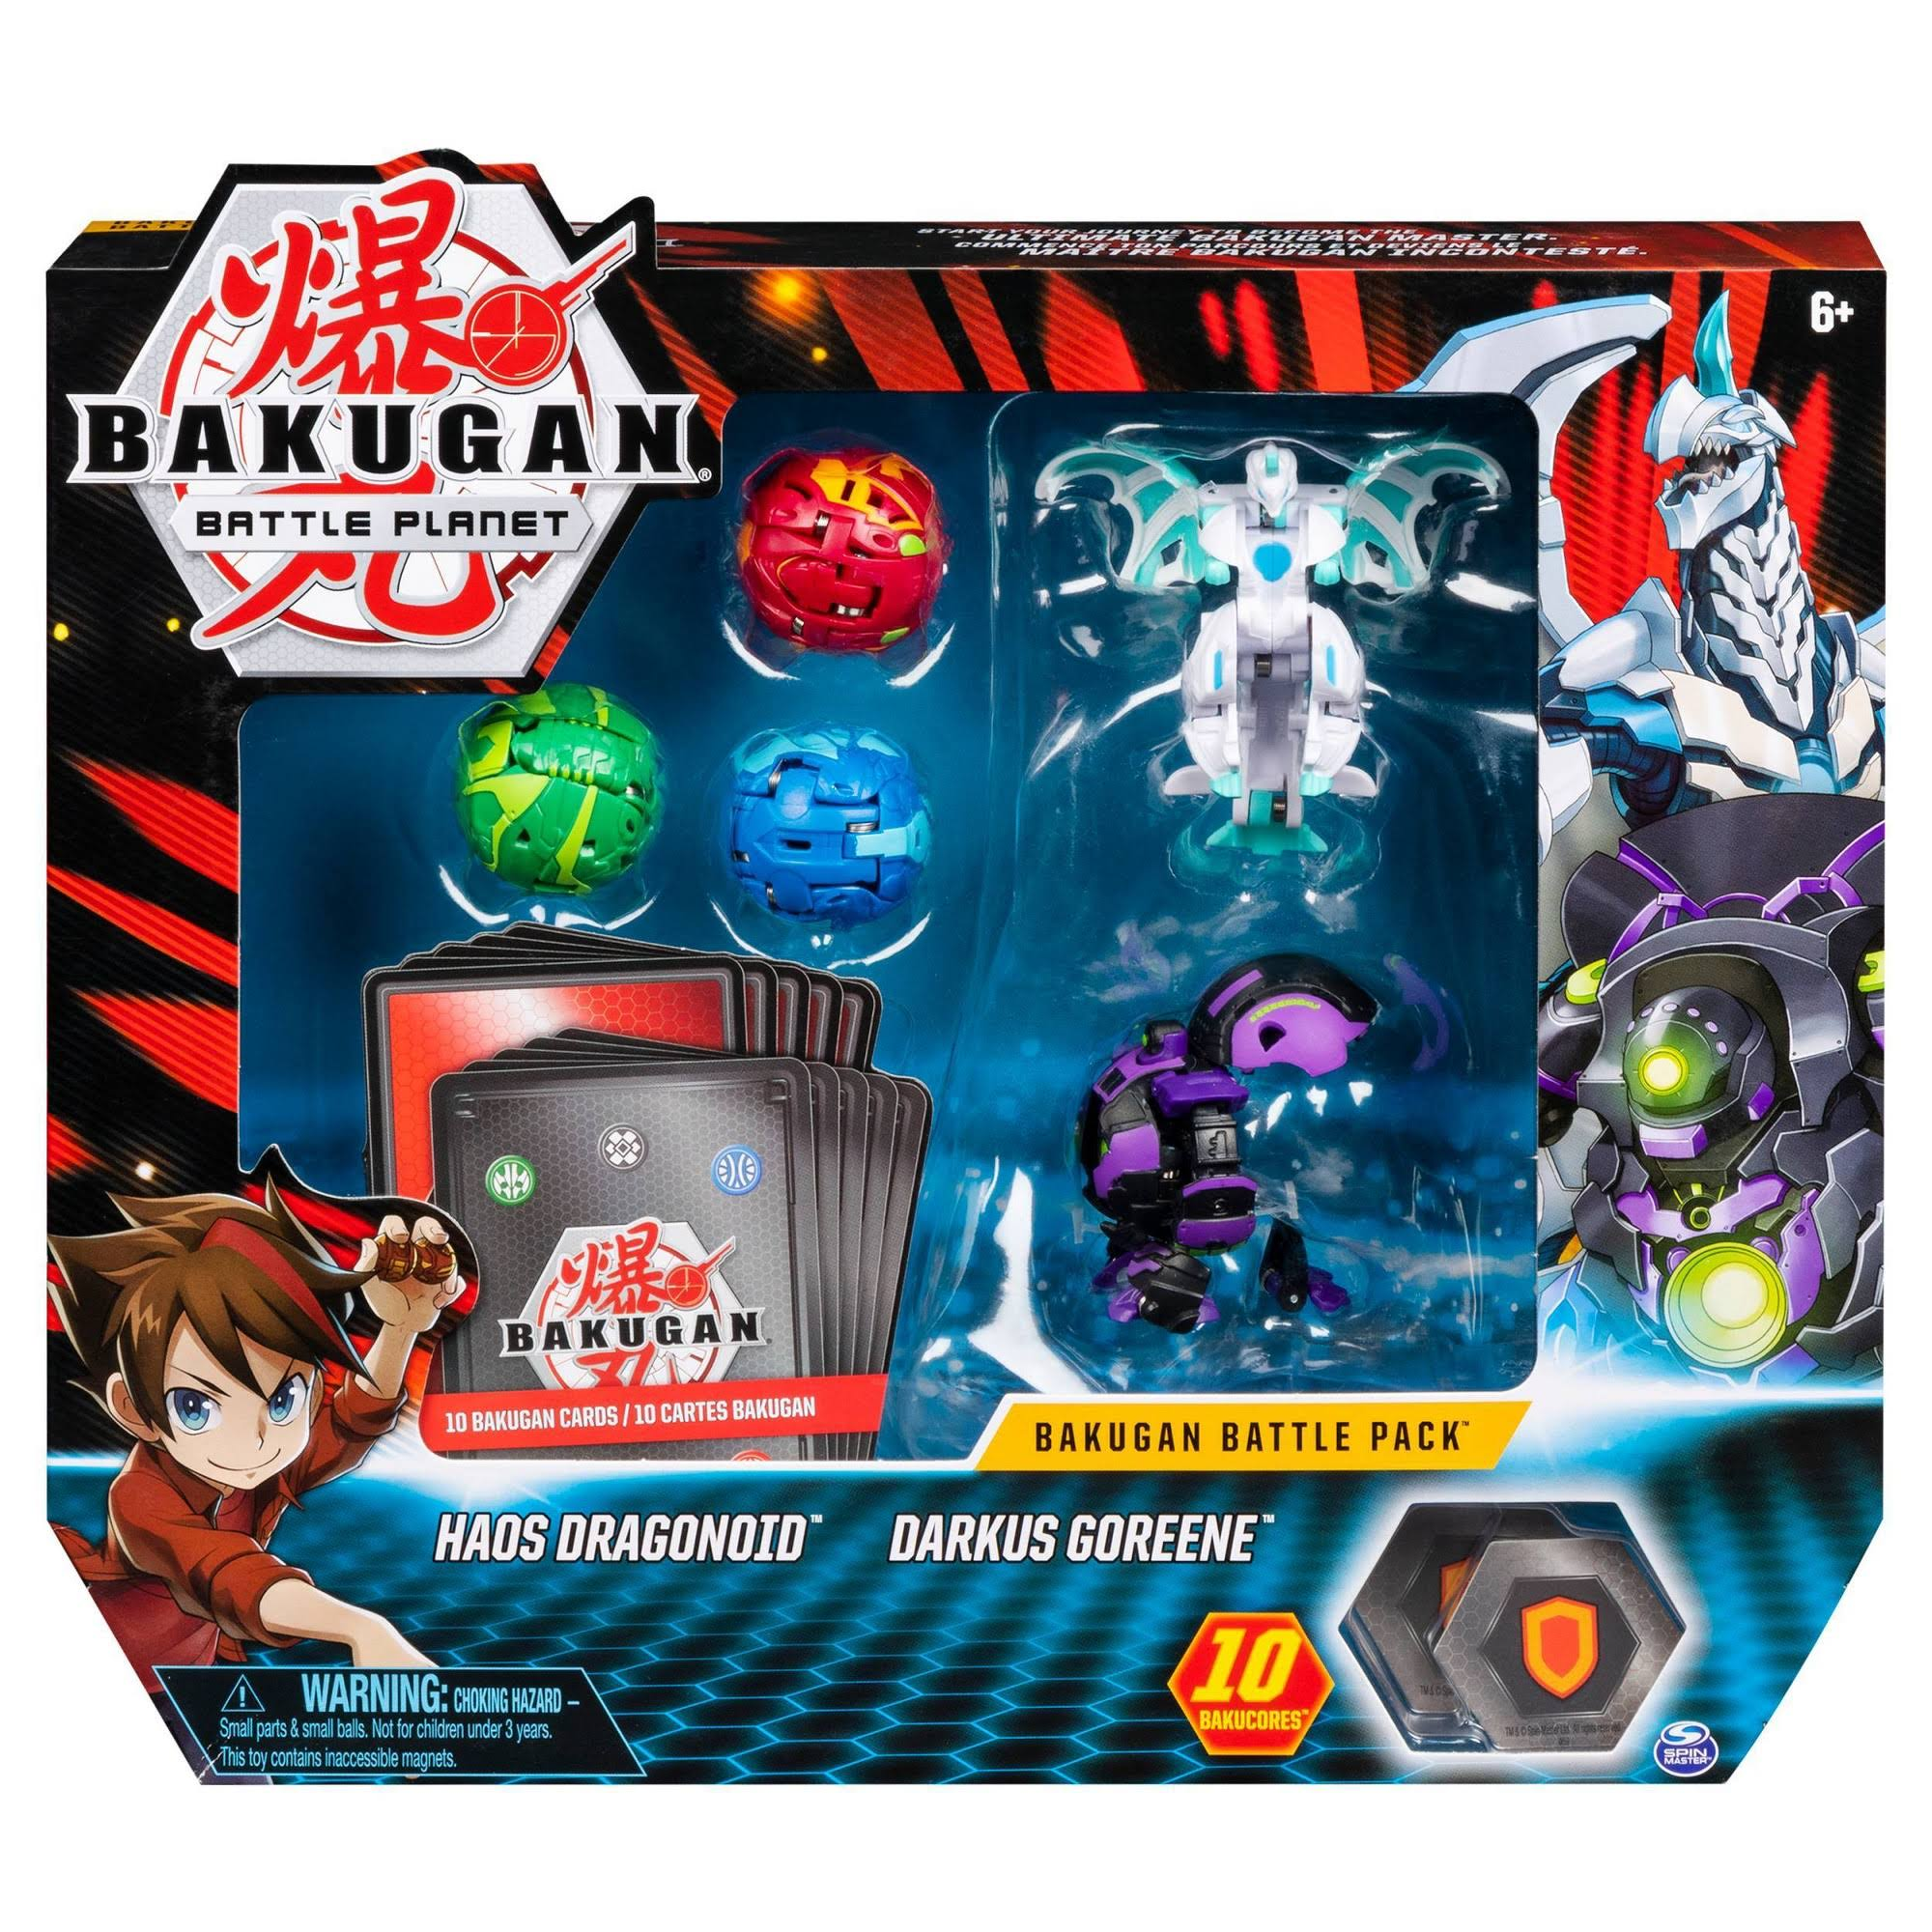 Bakugan Battle Pack 5-Pack Haos Dragonoid and Darkus Goreene Collectible Cards and Figures